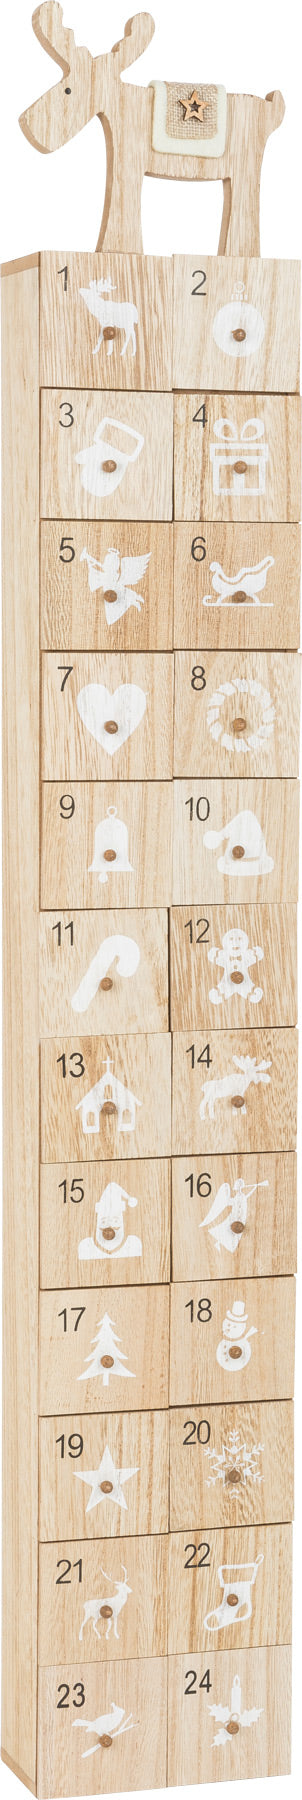 Wooden Modern Advent Calendar